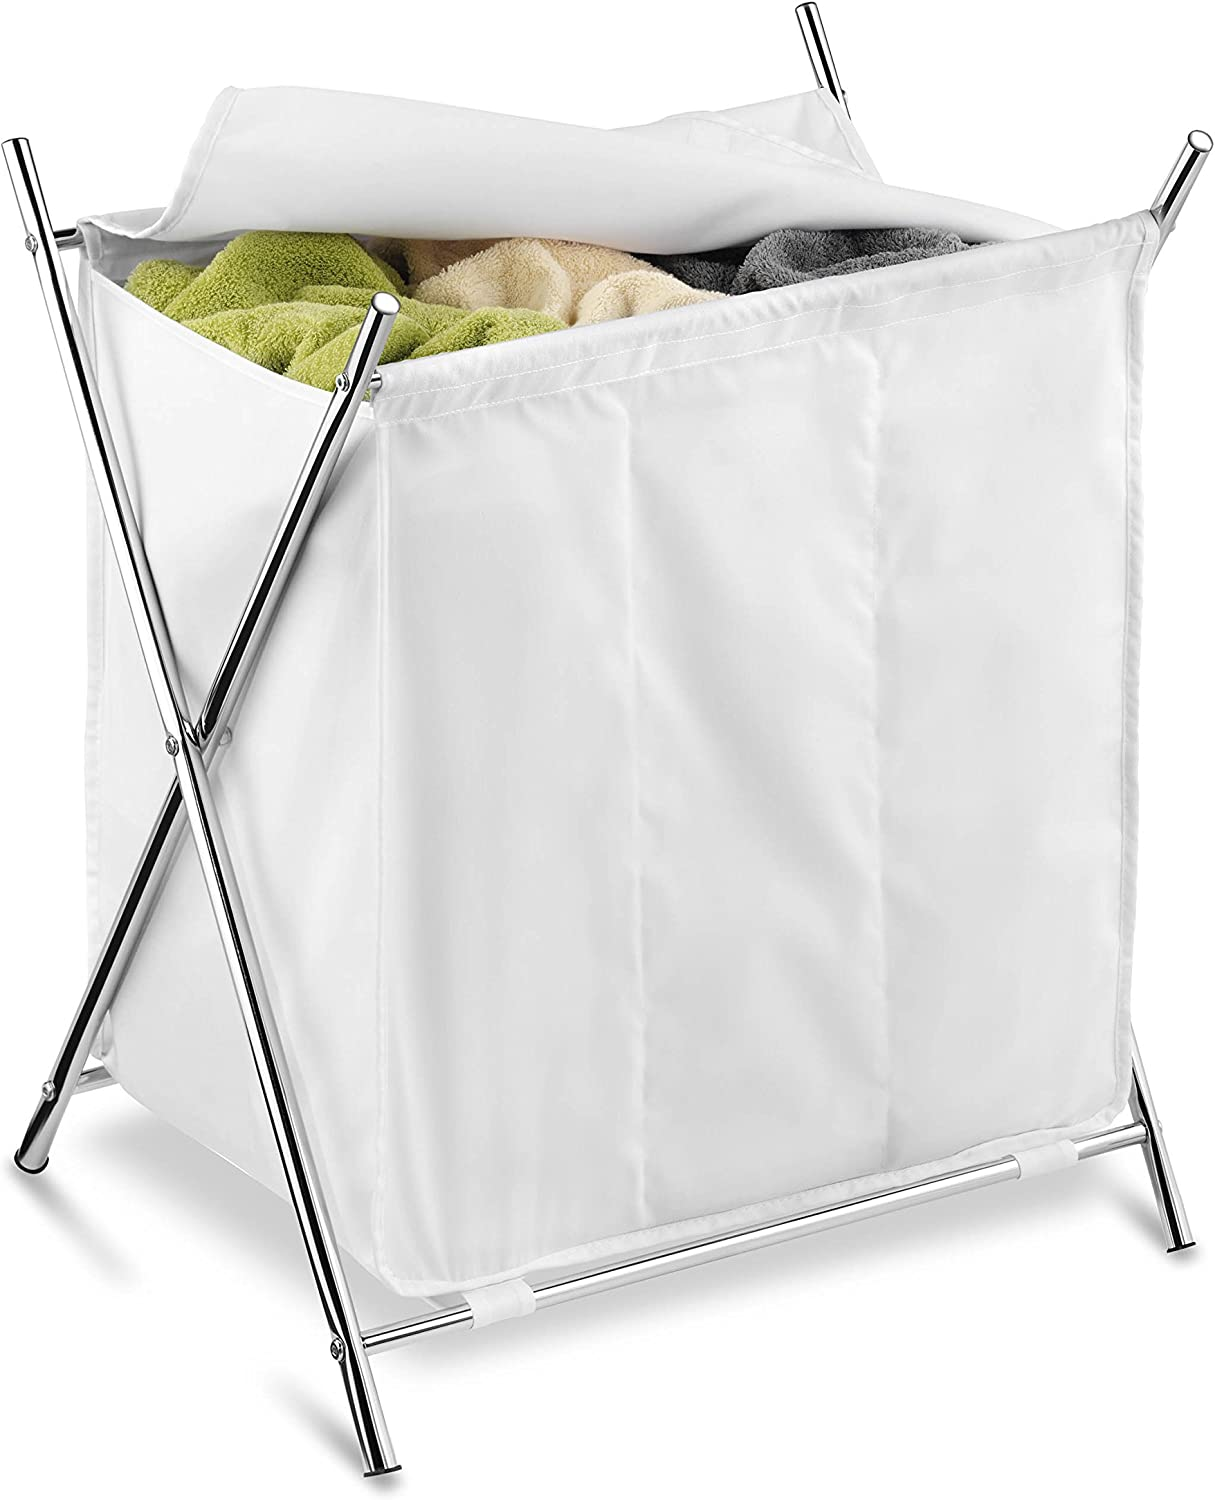 Honey-Can-Do Folding Triple Laundry Sorter, White/Chrome